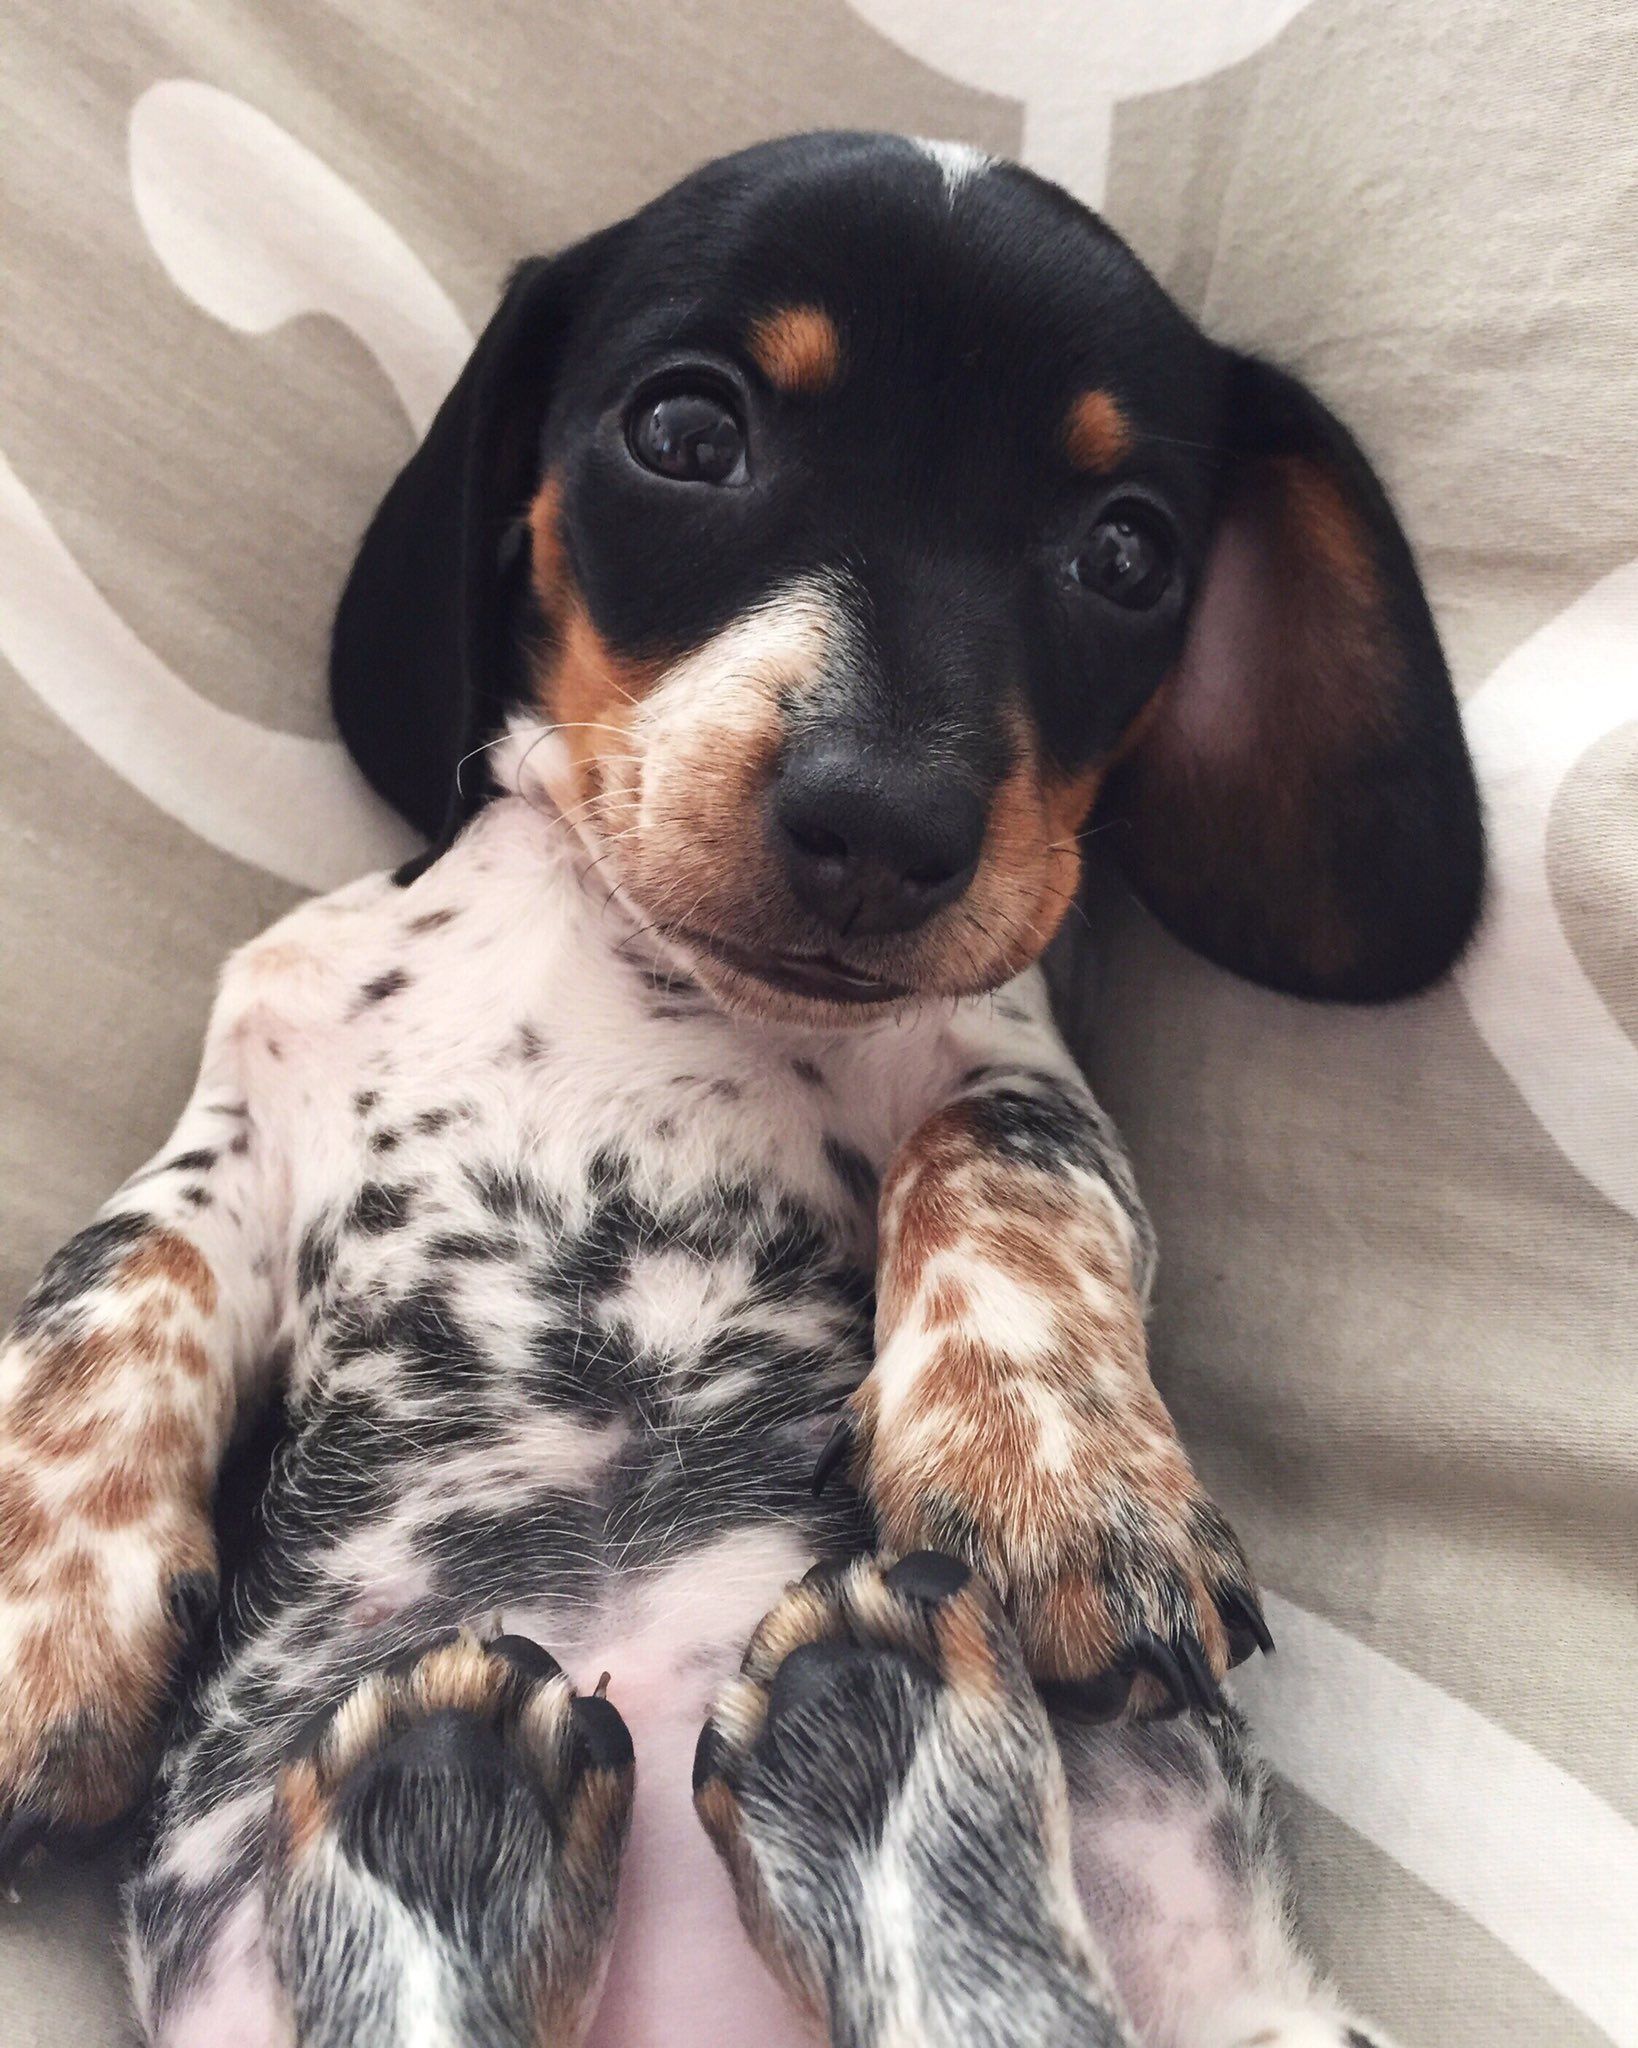 Moo Adorable Little Reese The Miniature Dachshund Puppy Dachshund Puppies Puppies Dachshund Puppy Miniature